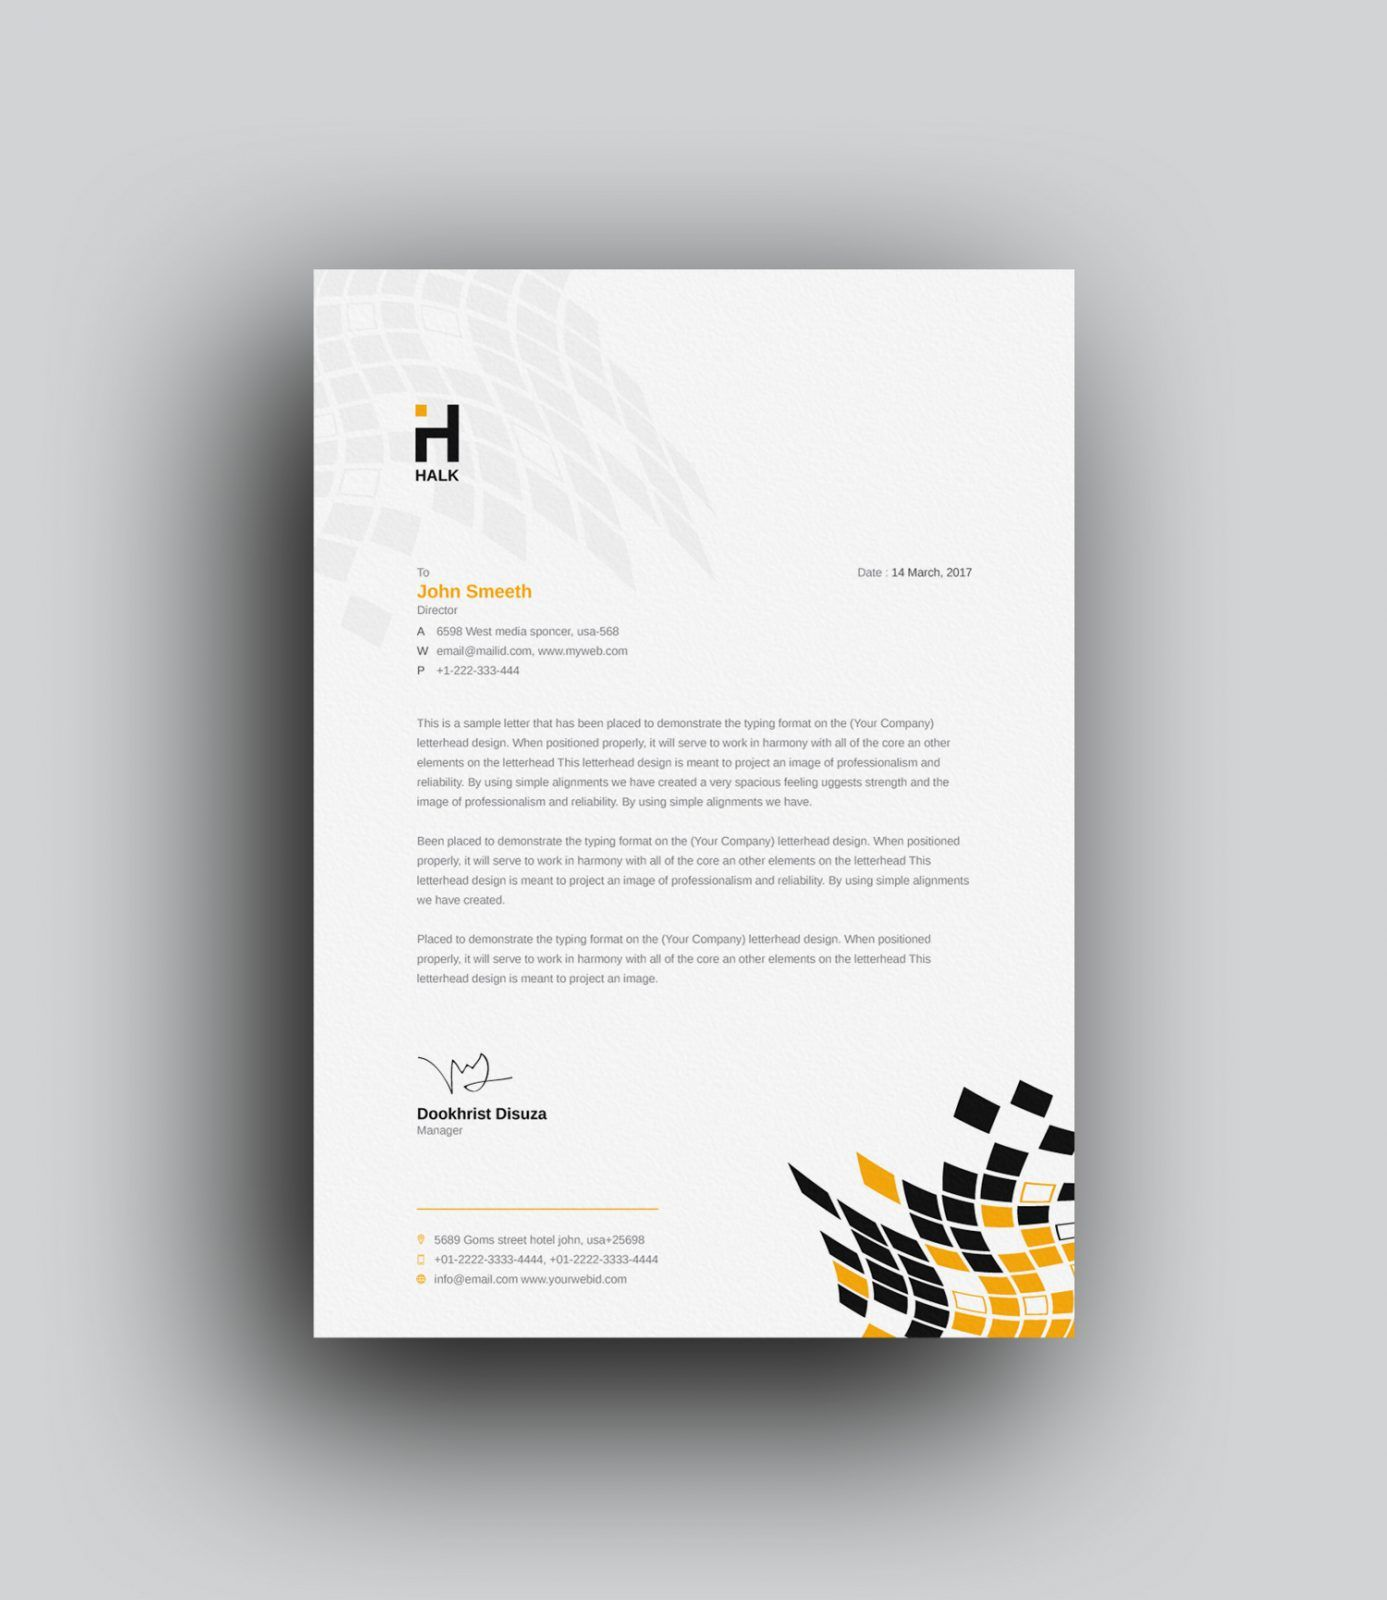 Aeolus Professional Corporate Letterhead Template 001024: Alastor Professional Corporate Letterhead Template 001026